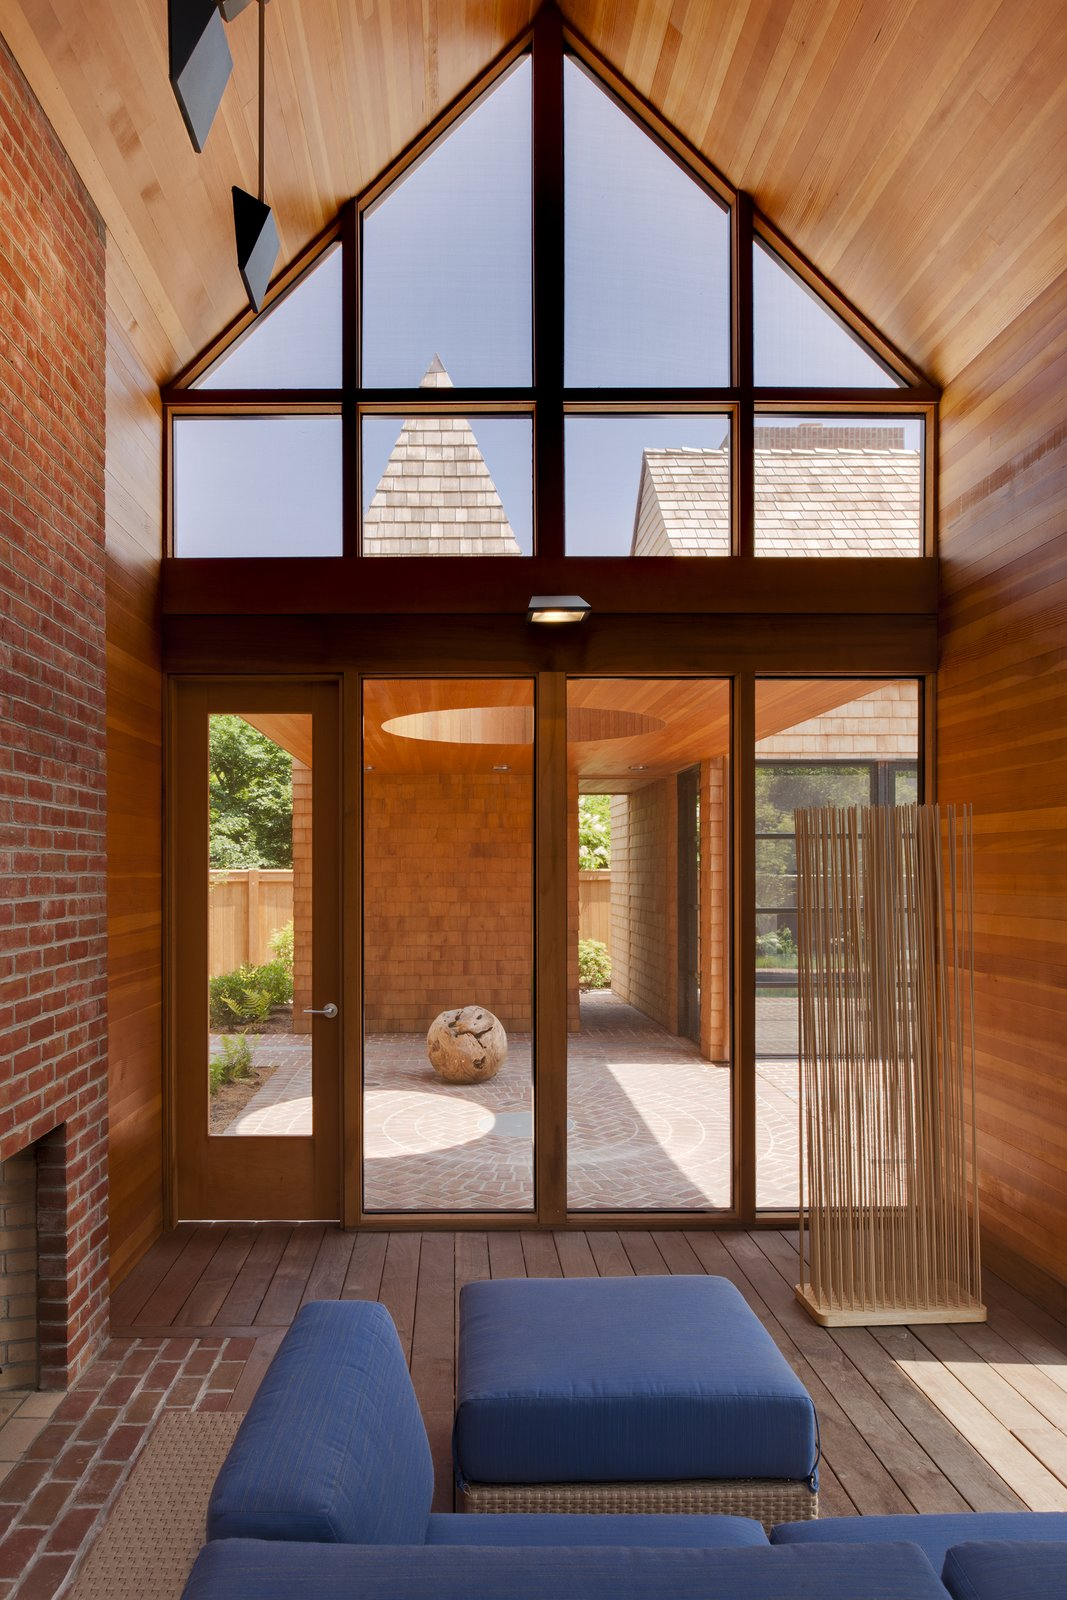 A Douglas fir ceiling in the screened porch and red bricks are accented by blue Arizona modular outdoor seating by Barlow Tyrie.  Desert Homes by Heather Corcoran from A Traditional Facade Hides A Light-Filled Modern Delaware Renovation